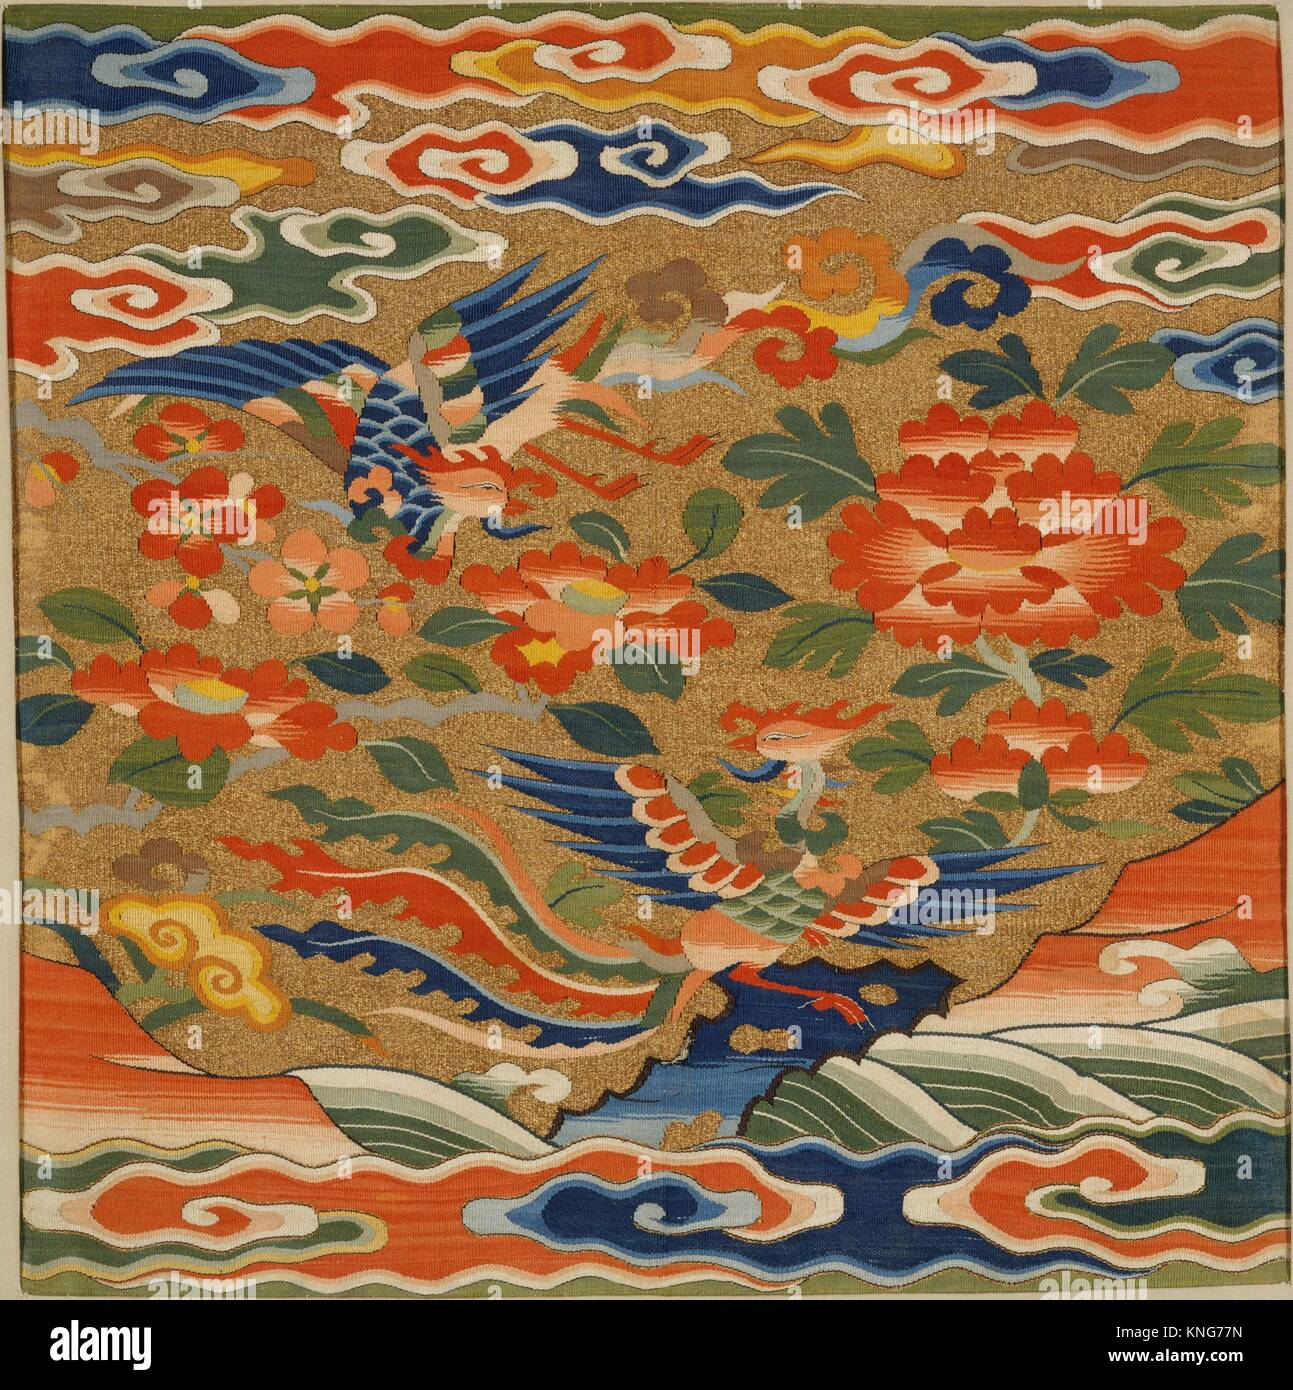 Period: Ming dynasty (1368-1644); Date: 16th century; Culture: China;  Medium: Silk and metallic thread tapestry (kesi);